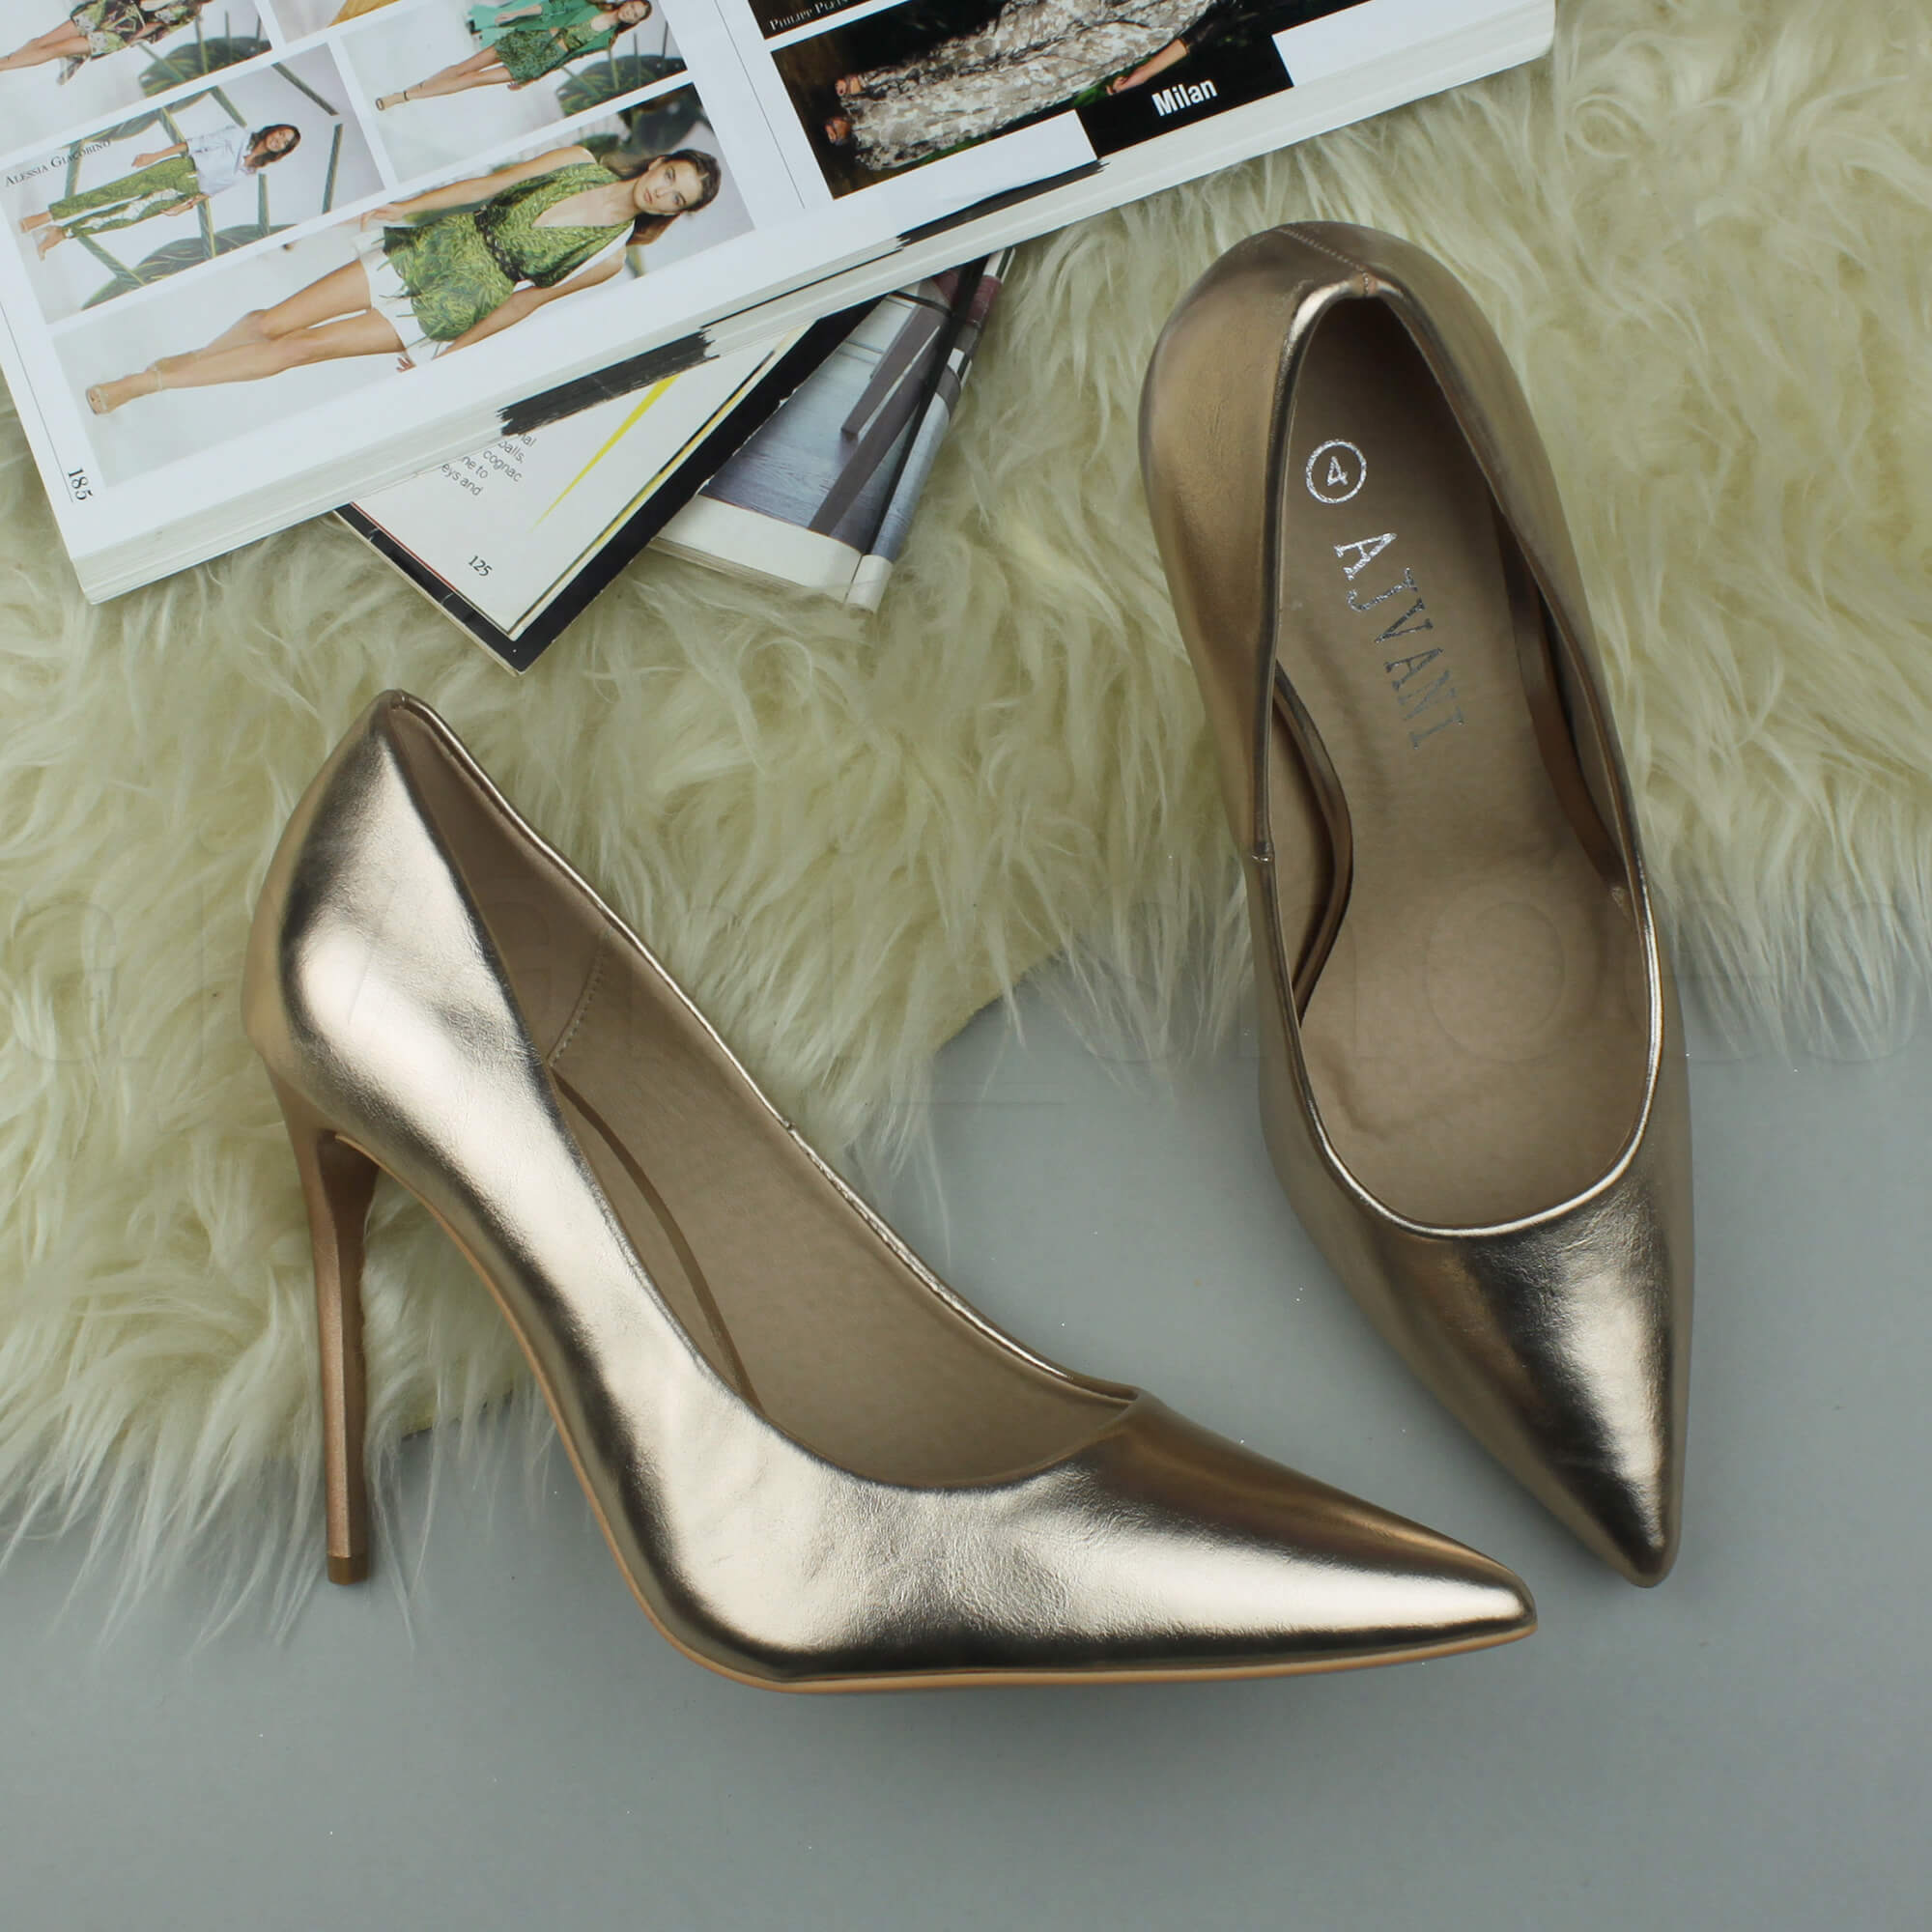 WOMENS-LADIES-HIGH-HEEL-POINTED-CONTRAST-COURT-SMART-PARTY-WORK-SHOES-PUMPS-SIZE thumbnail 179